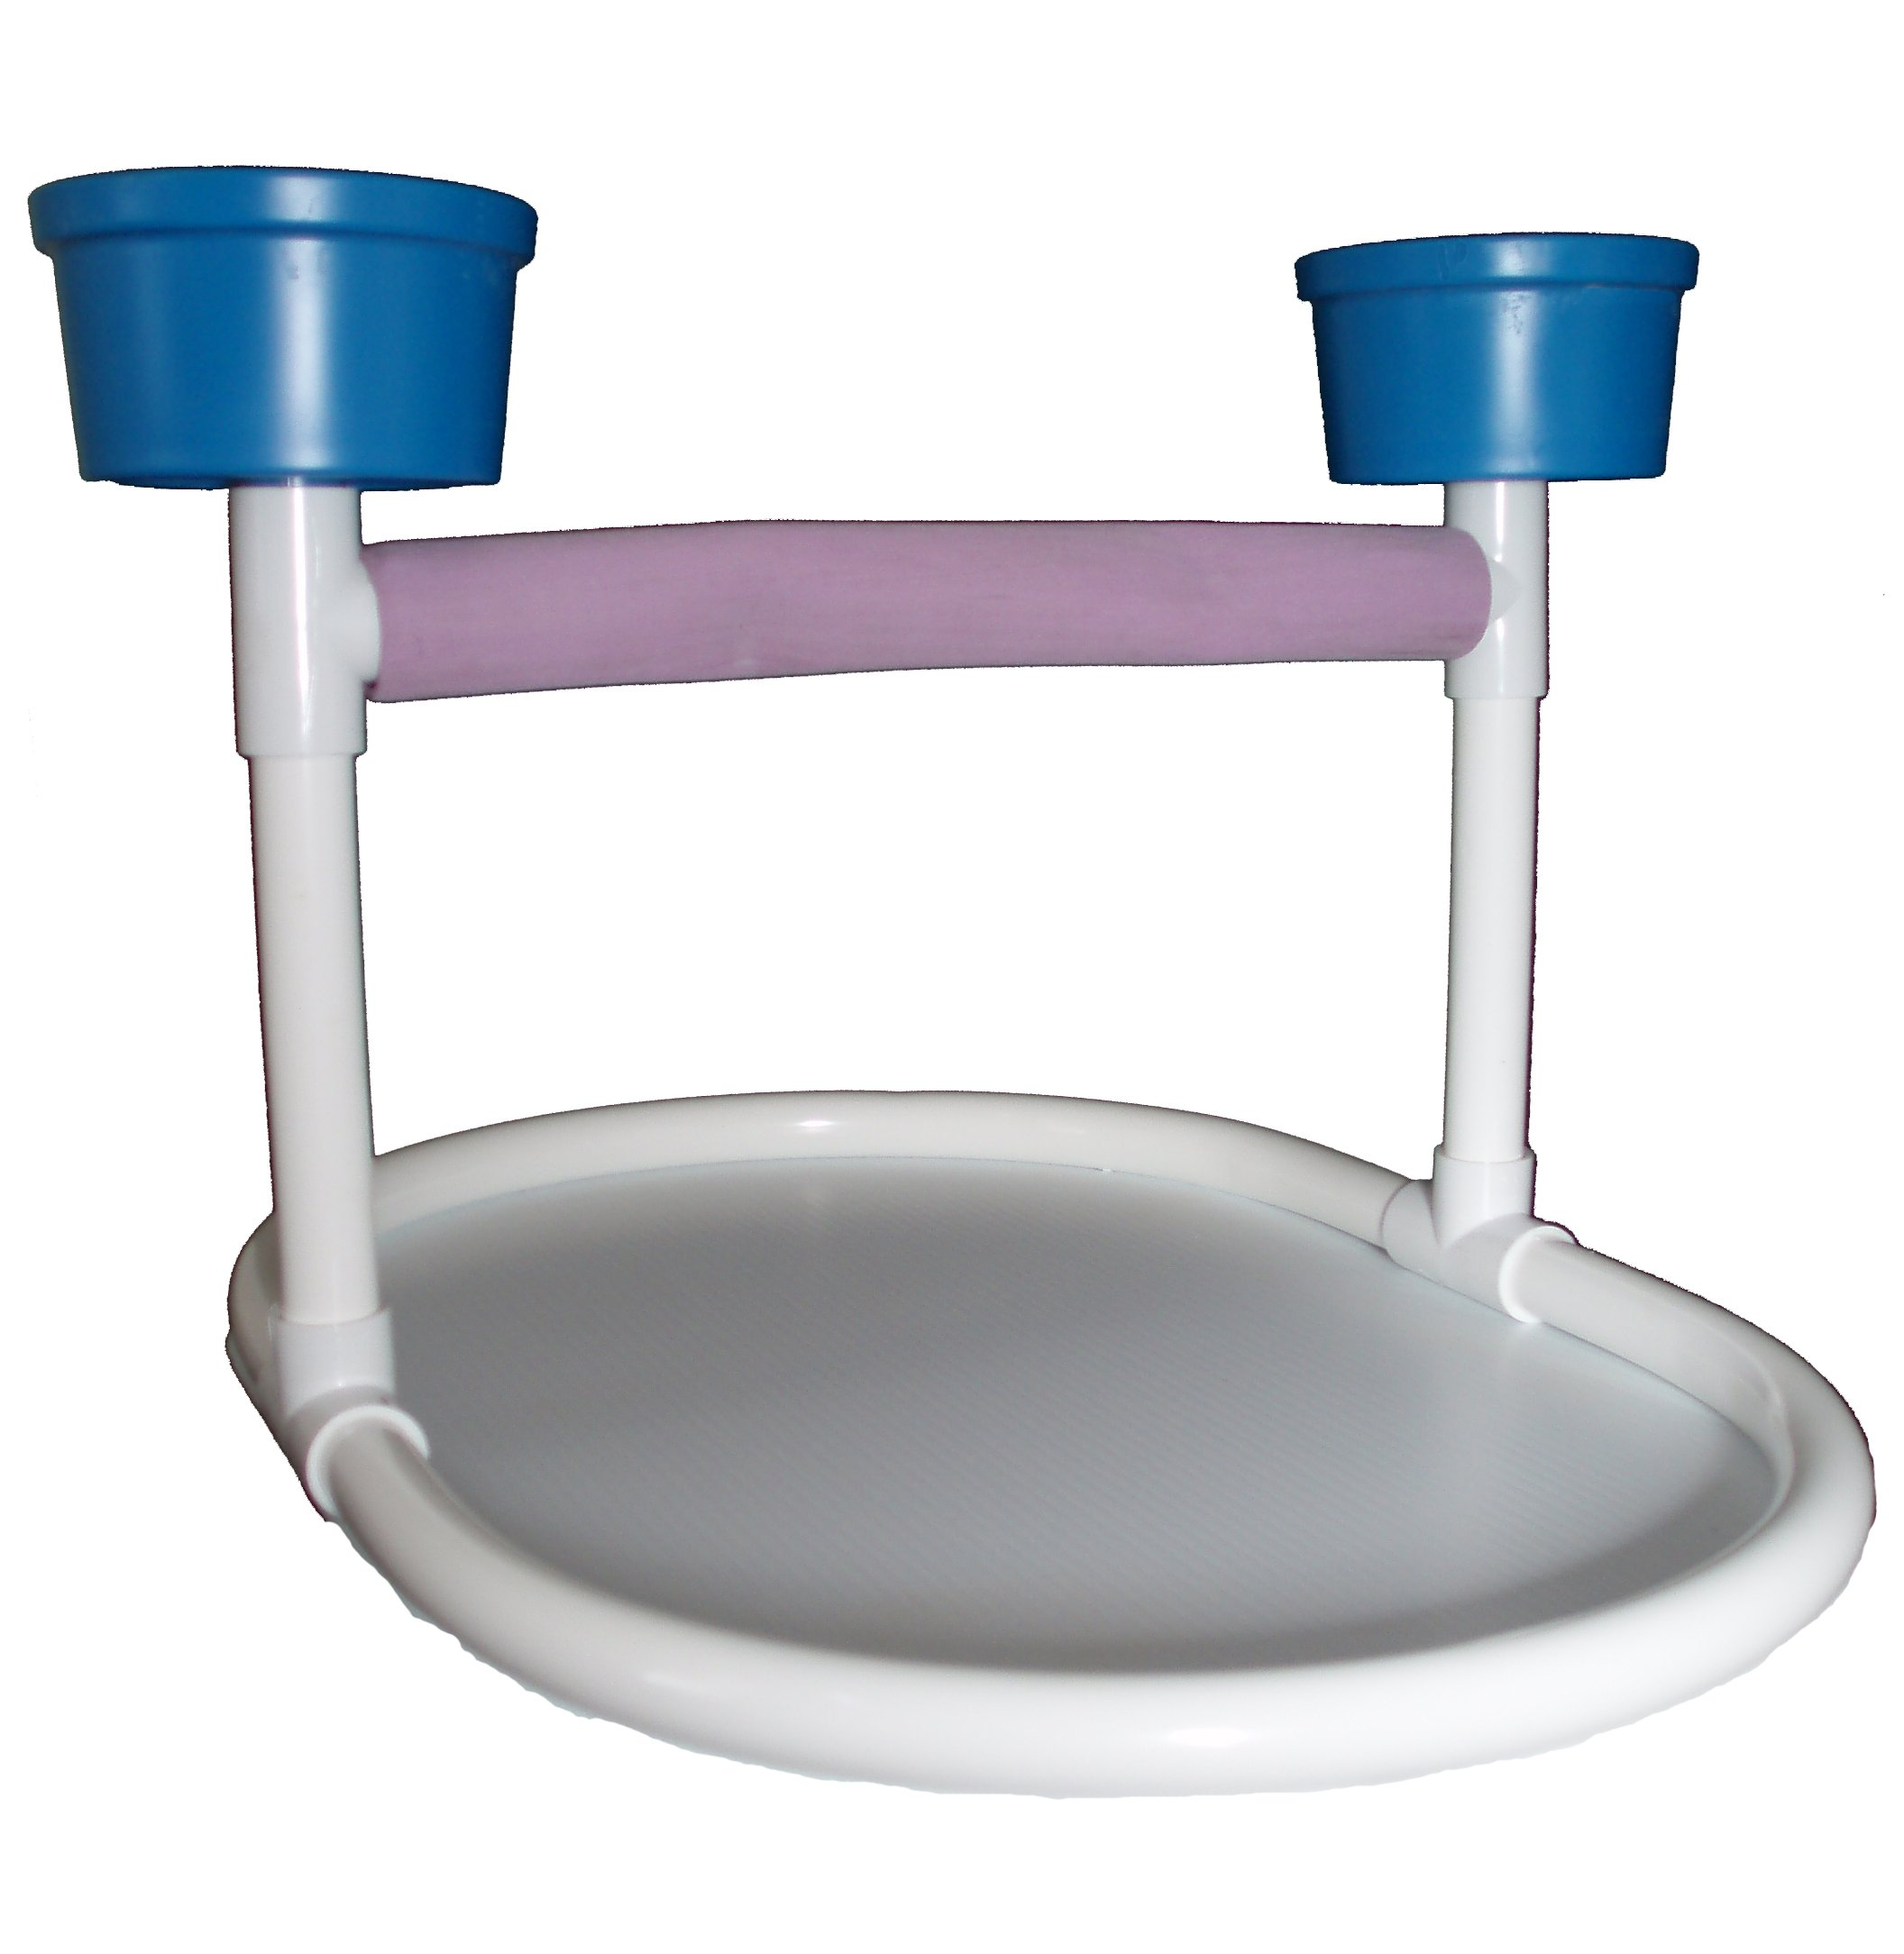 FeatherSmart Large Bird Table Top Stand w/Cups by FeatherSmart Bird Parrot Table Top Stand